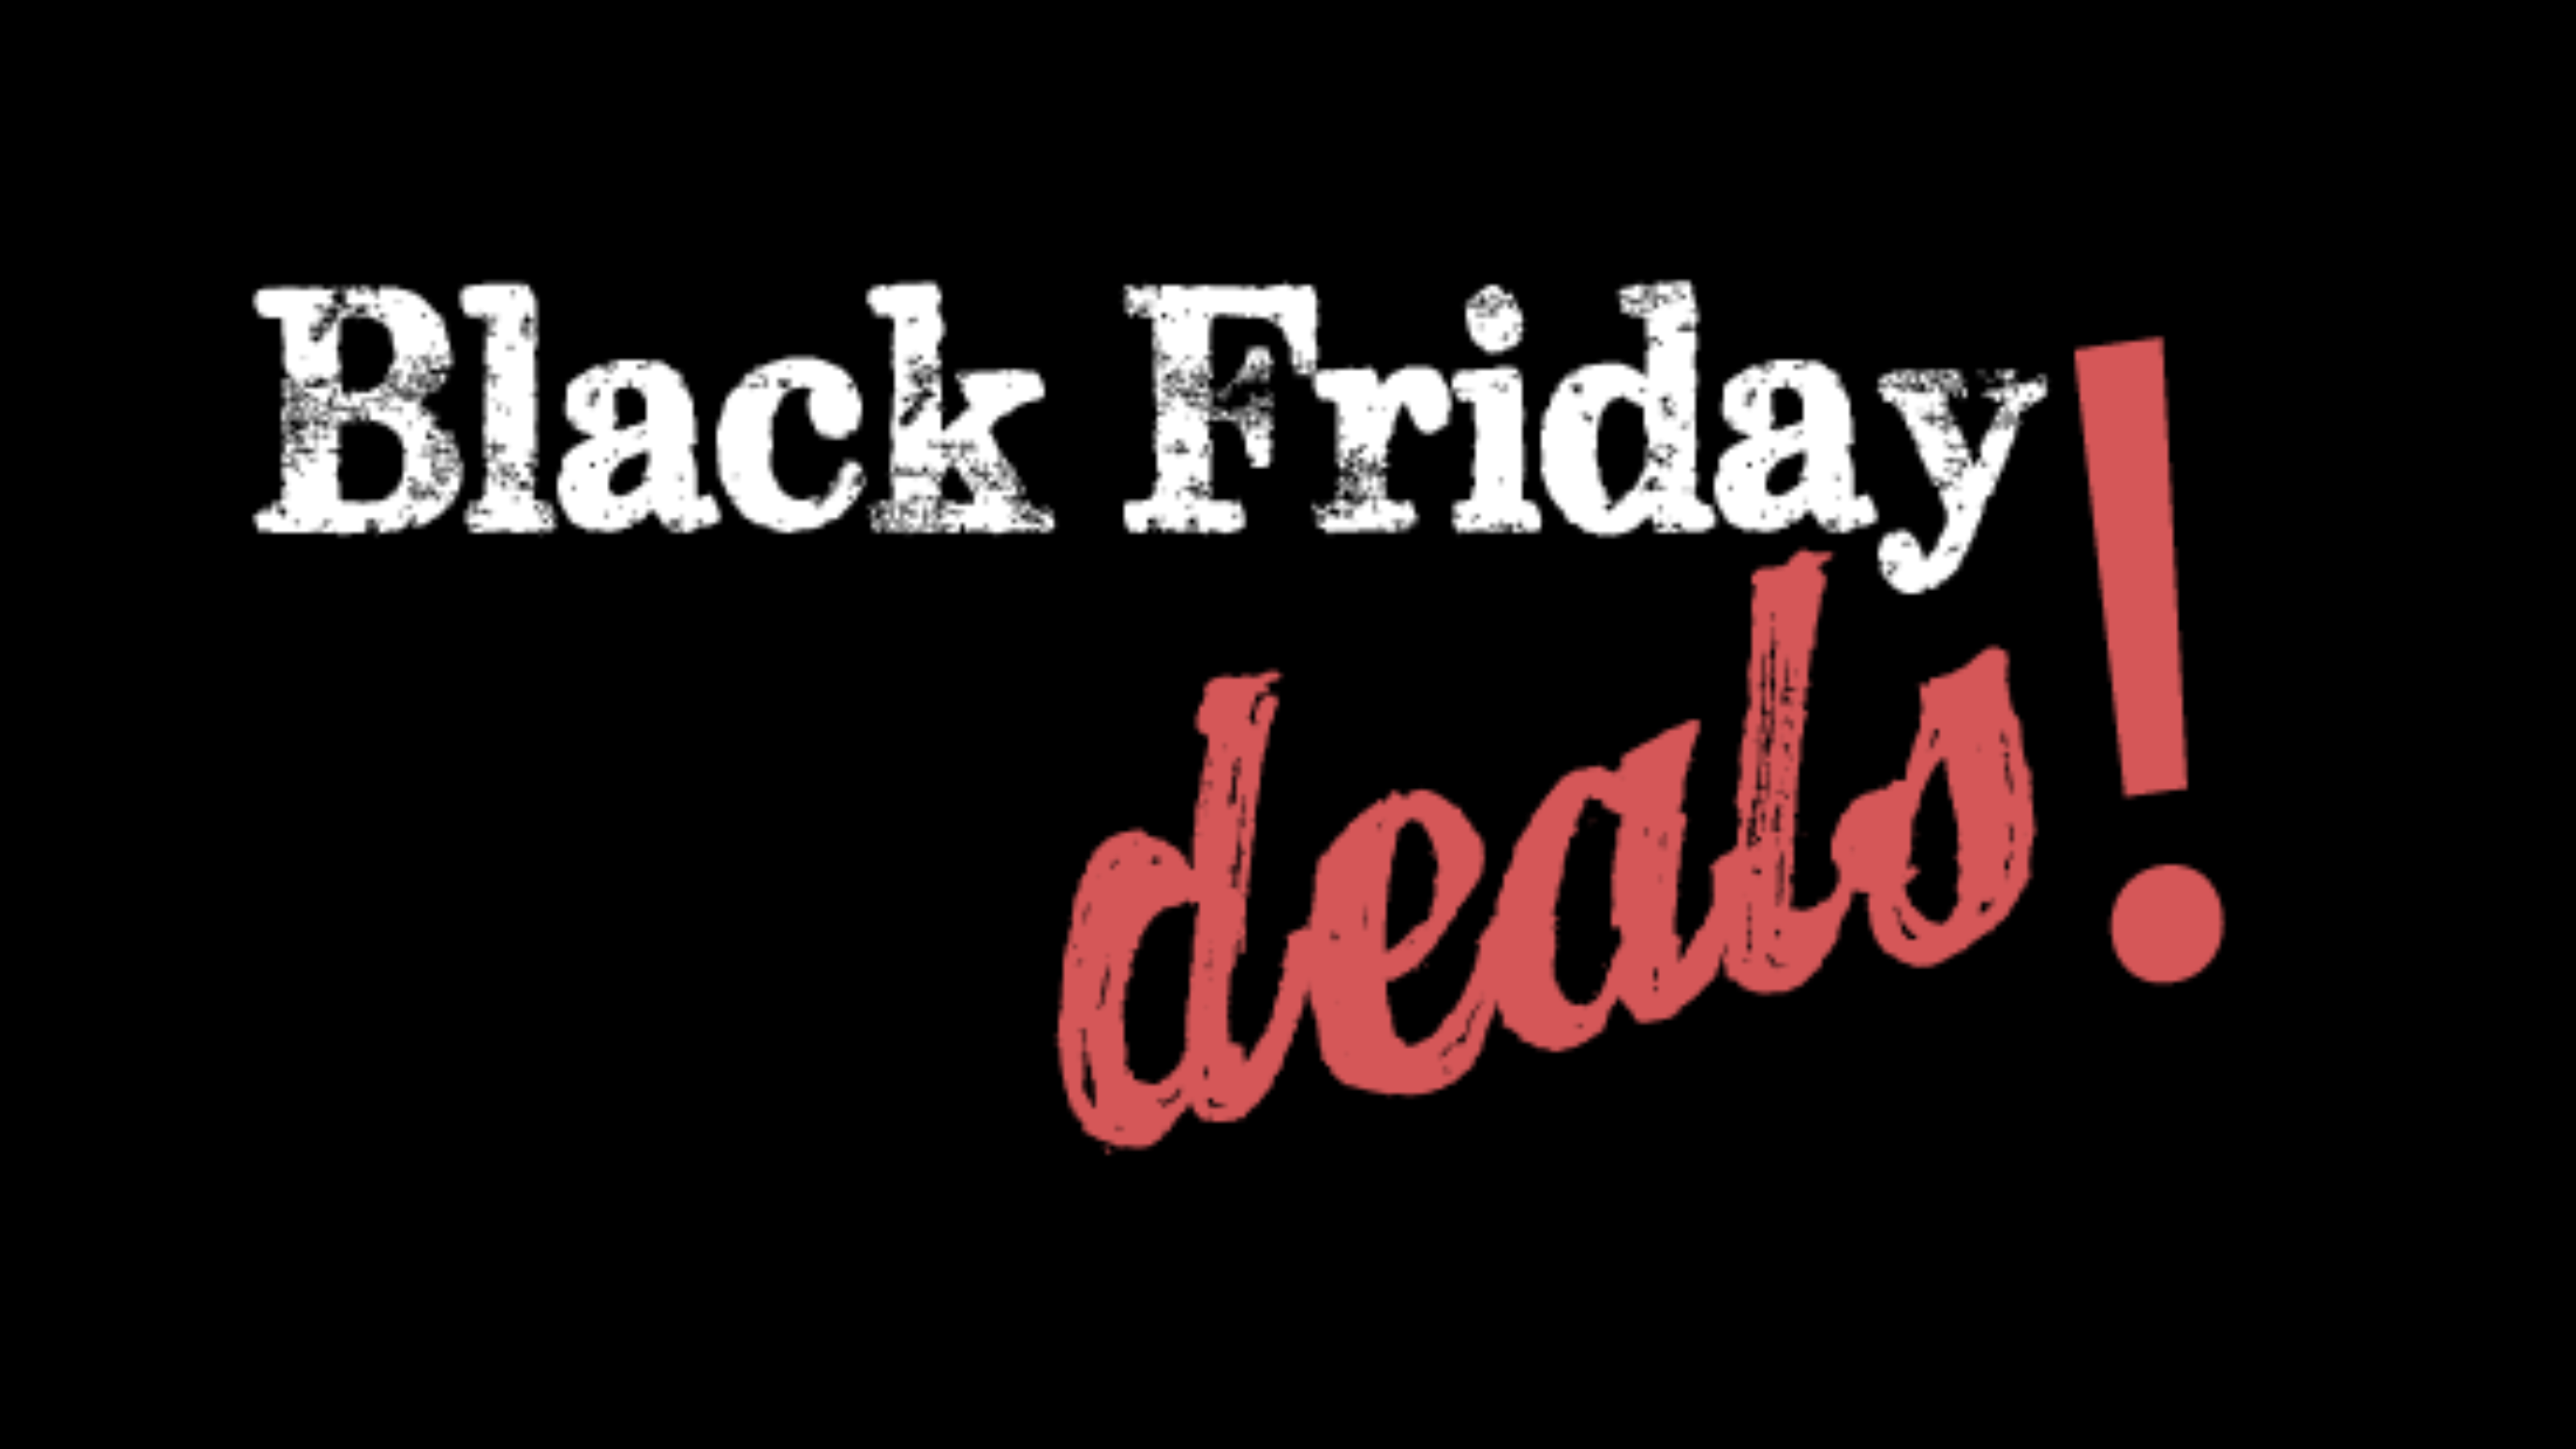 When do black friday deals come out hd wallpapers for Black friday fishing deals